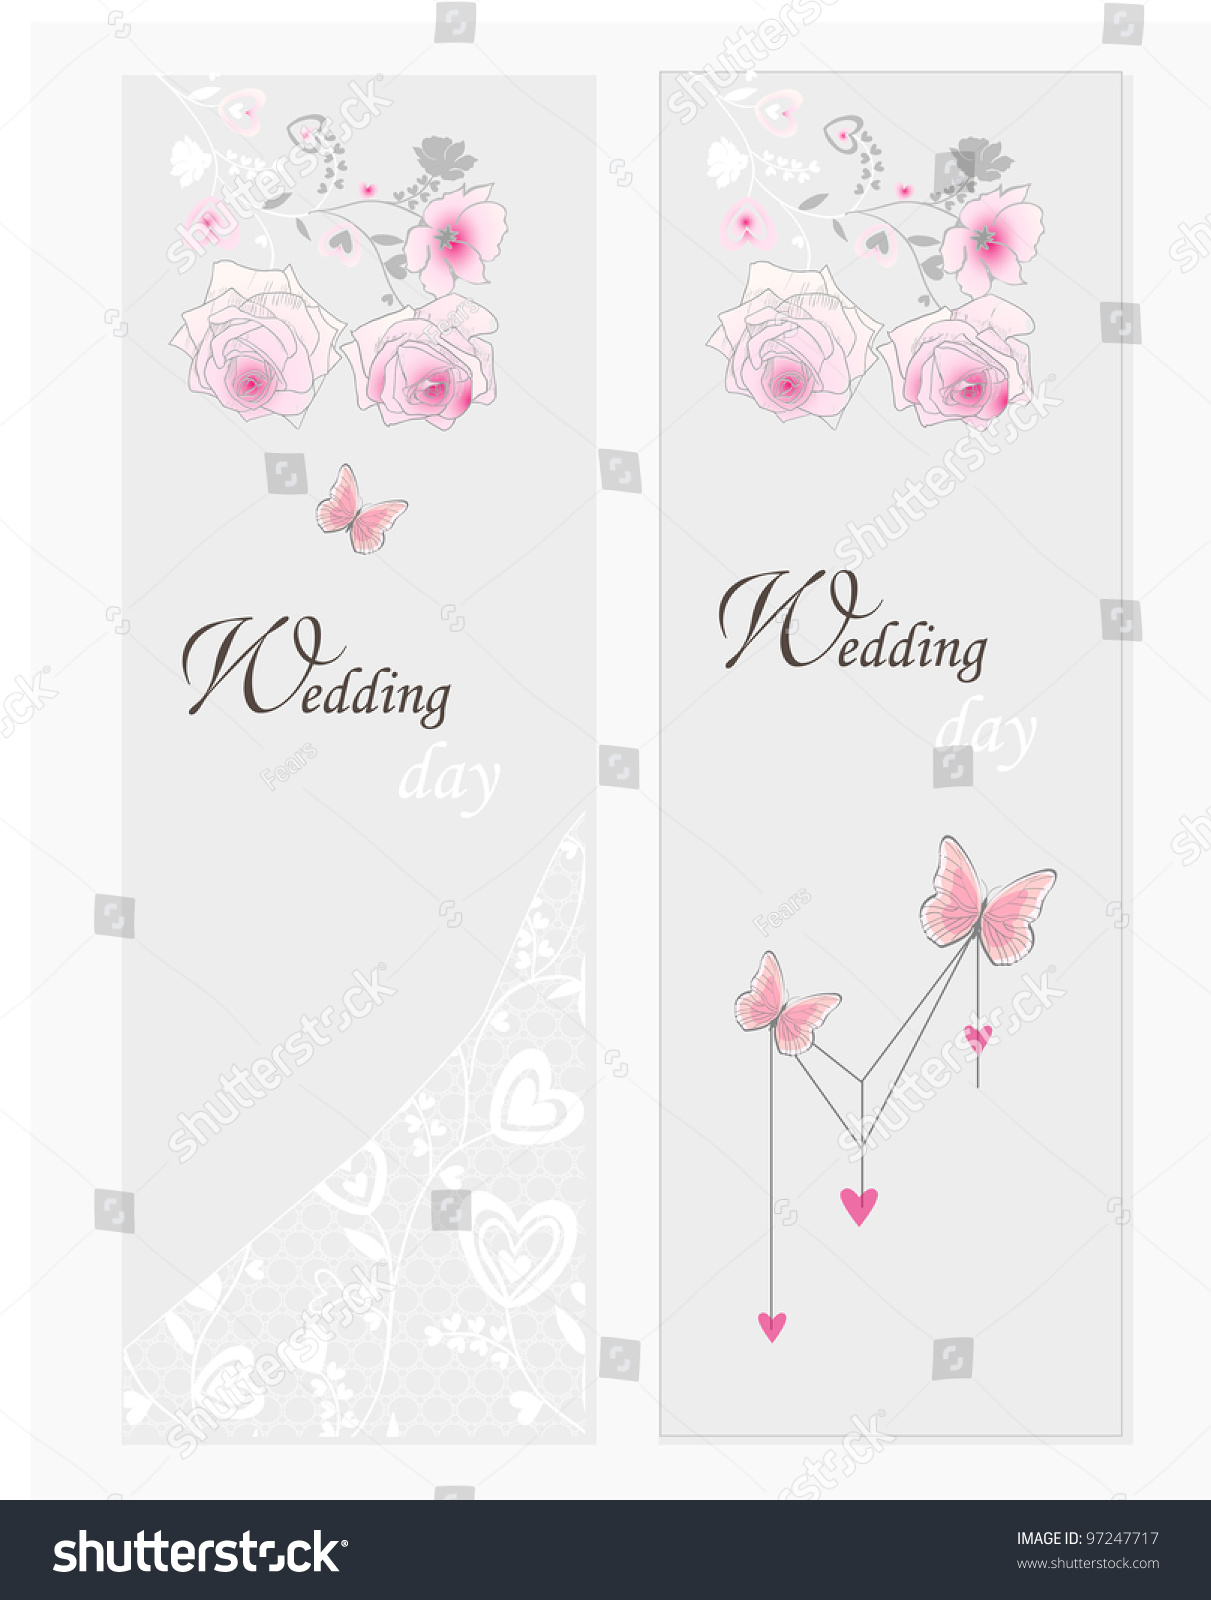 Save the data card template. Wedding invitation, baby shower, menu ...